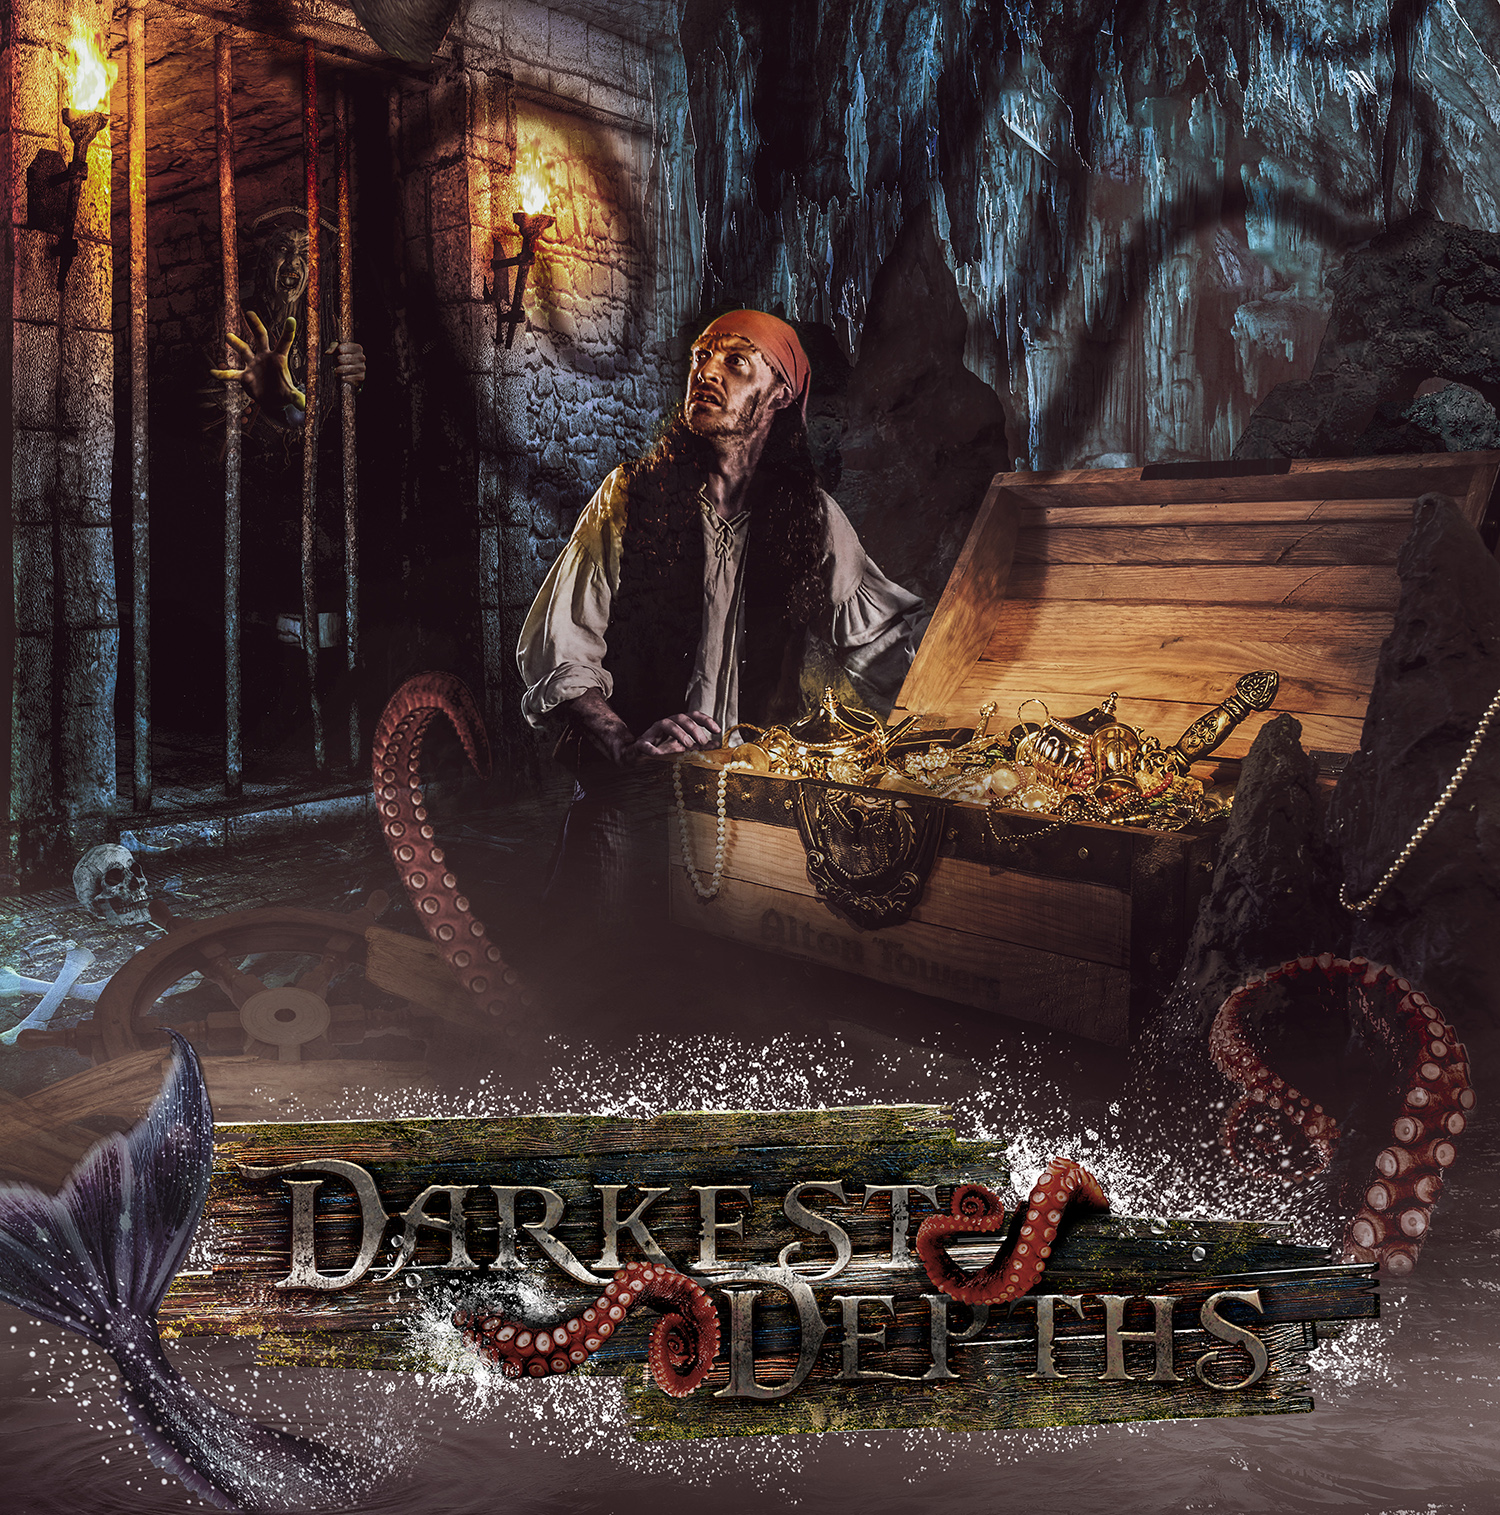 Darkest Depths is BACK for Alton Towers Scarefest 2020